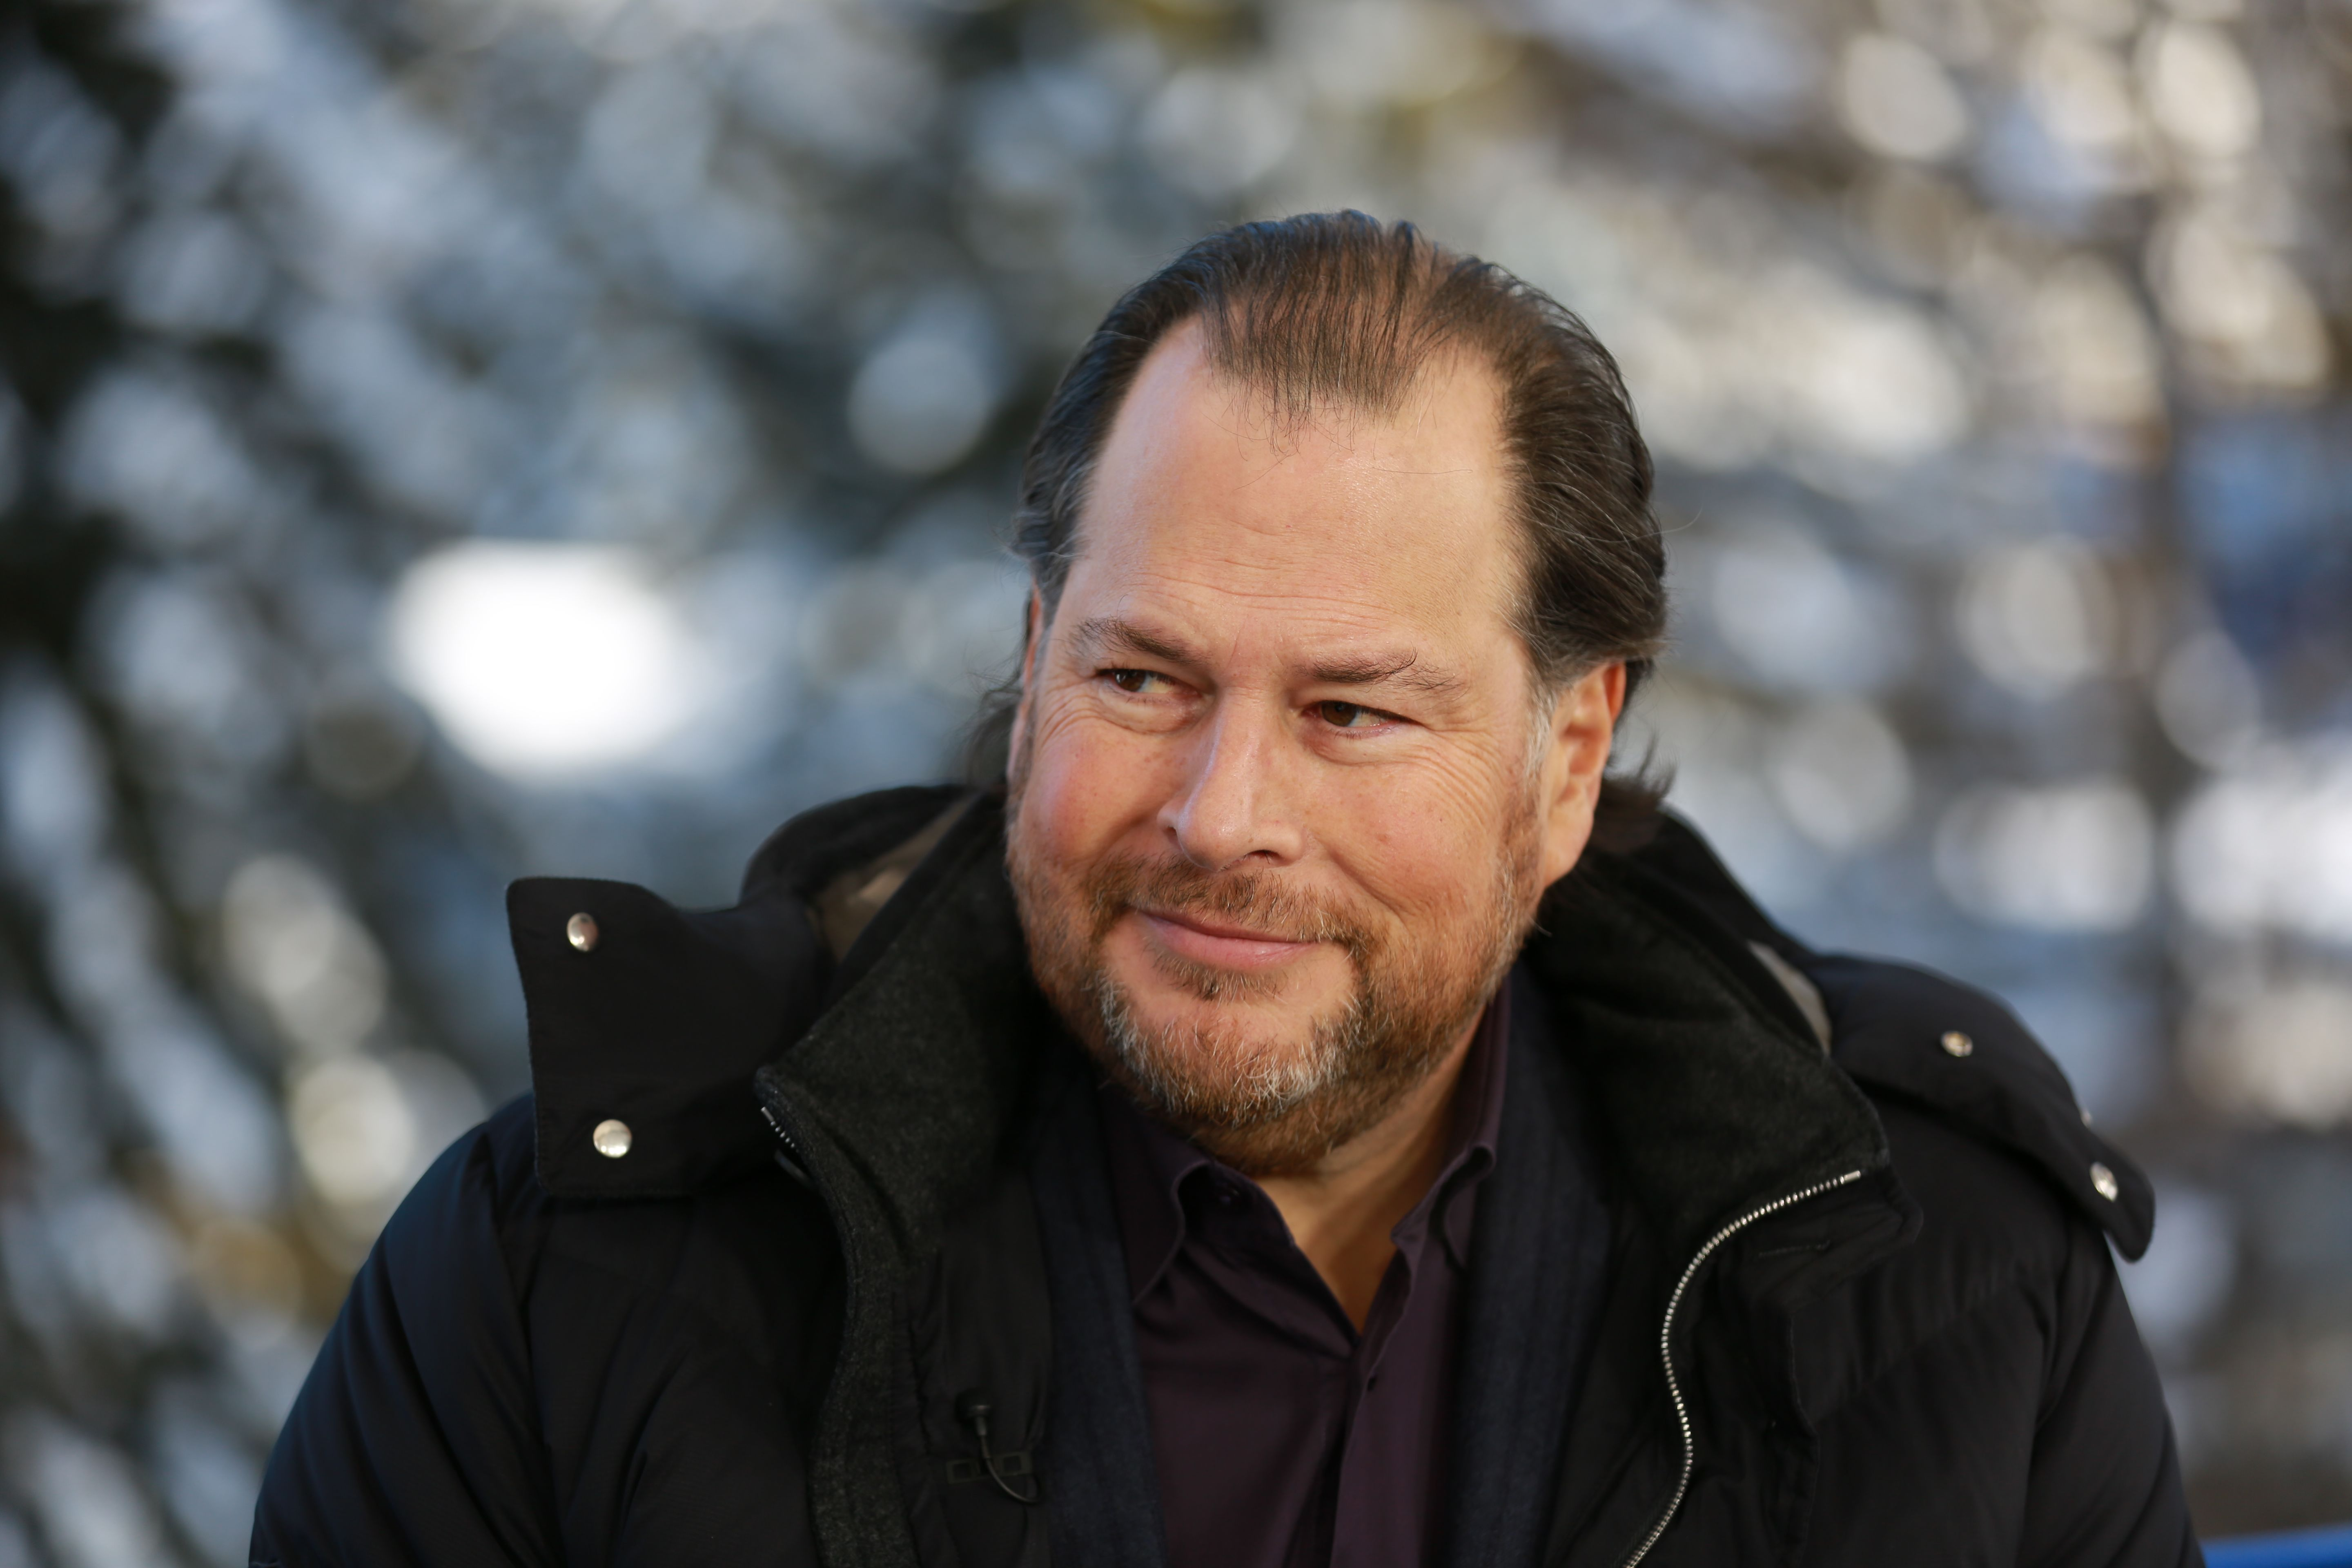 Salesforce bans some gun sellers from using its software